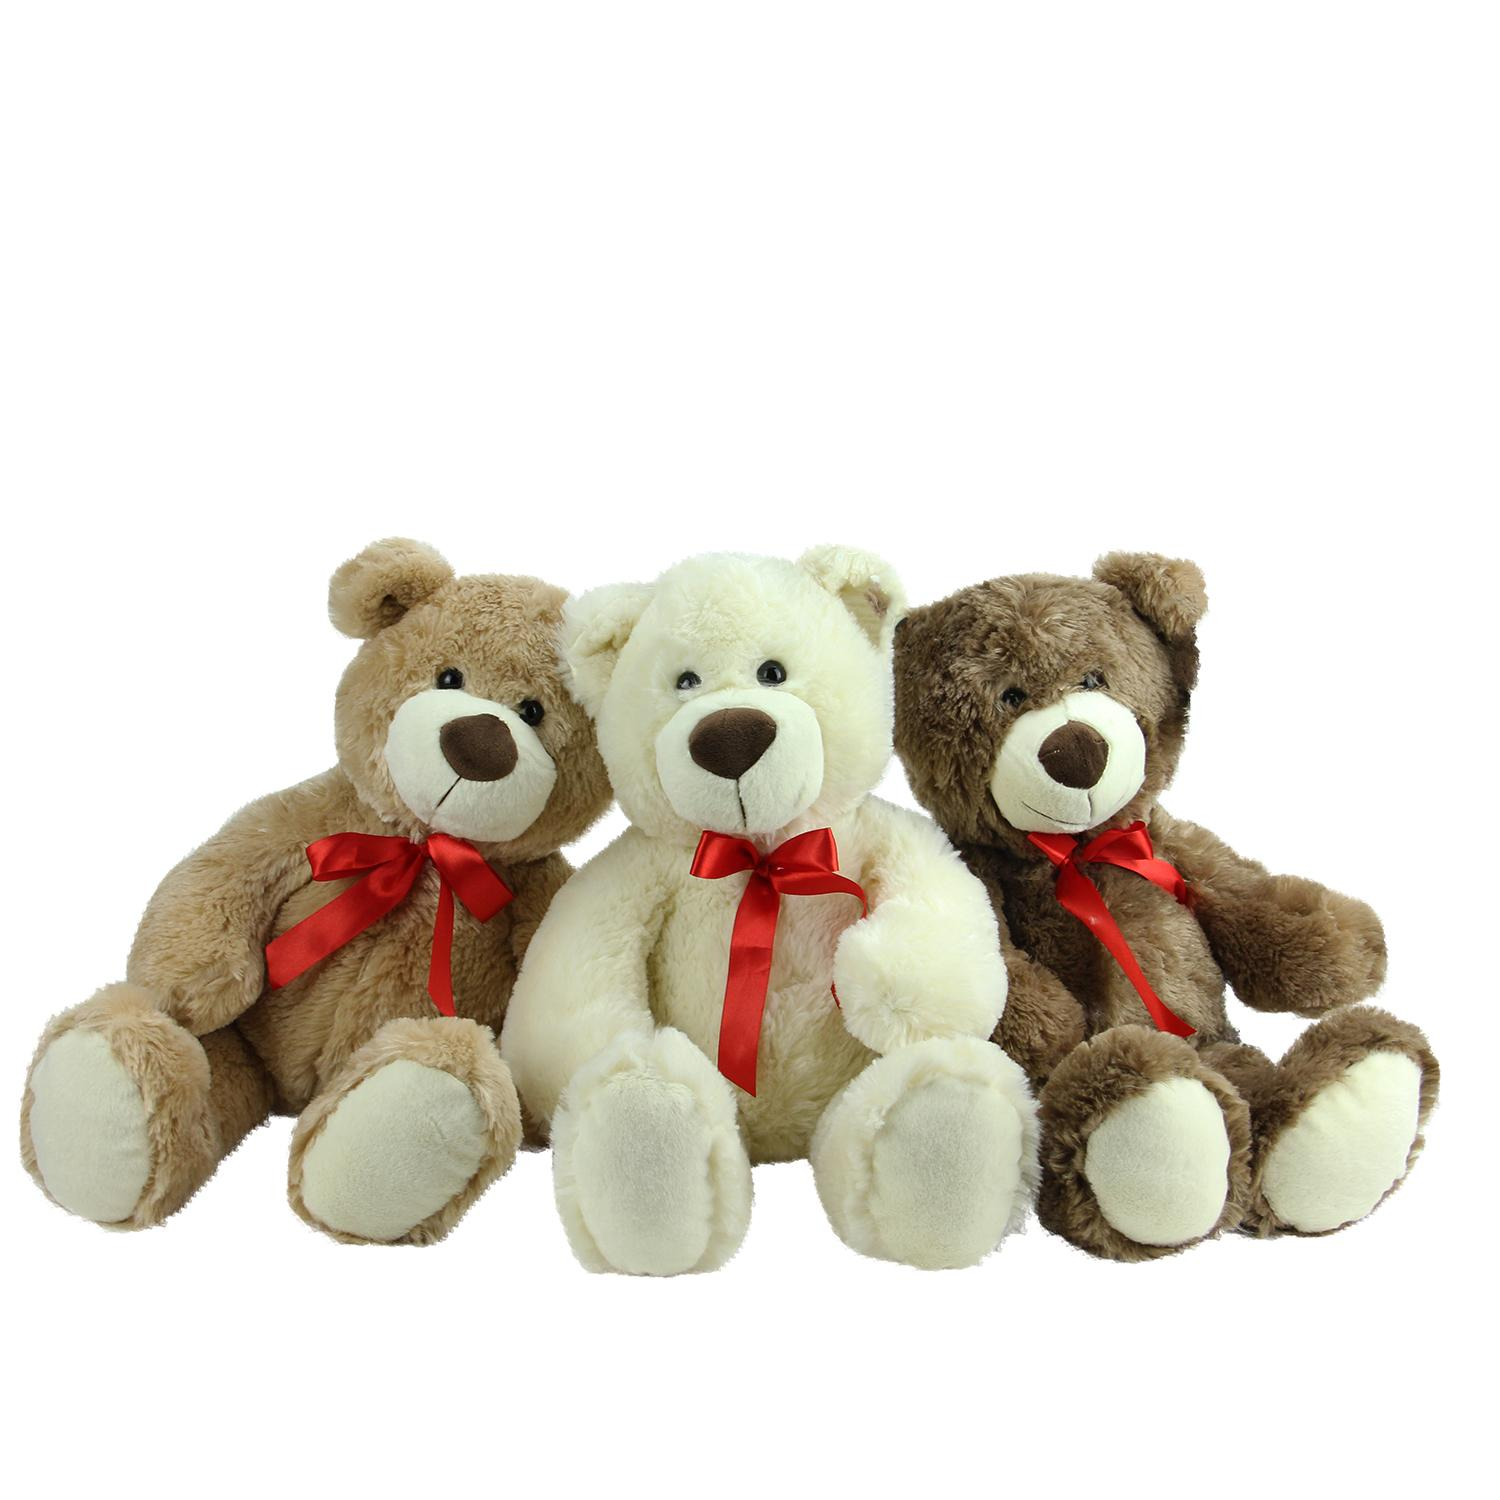 "Set of 3 Brown, Tan & Cream Plush Children's Teddy Bear Stuffed Animal Toys 20"" - image 2 of 2"